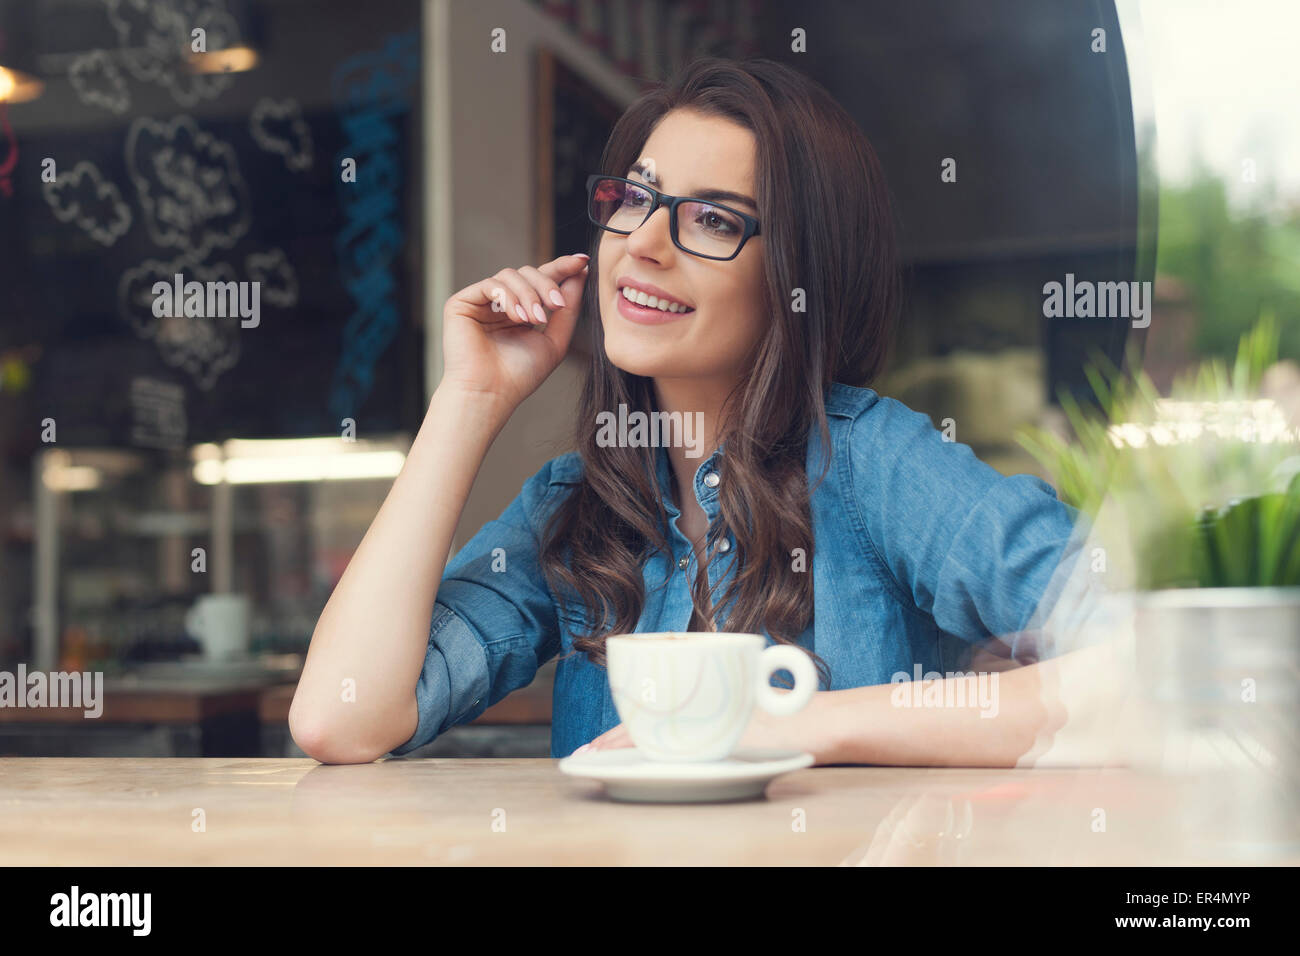 Beautiful woman wearing fashionable glasses at cafe. Krakow, Poland - Stock Image